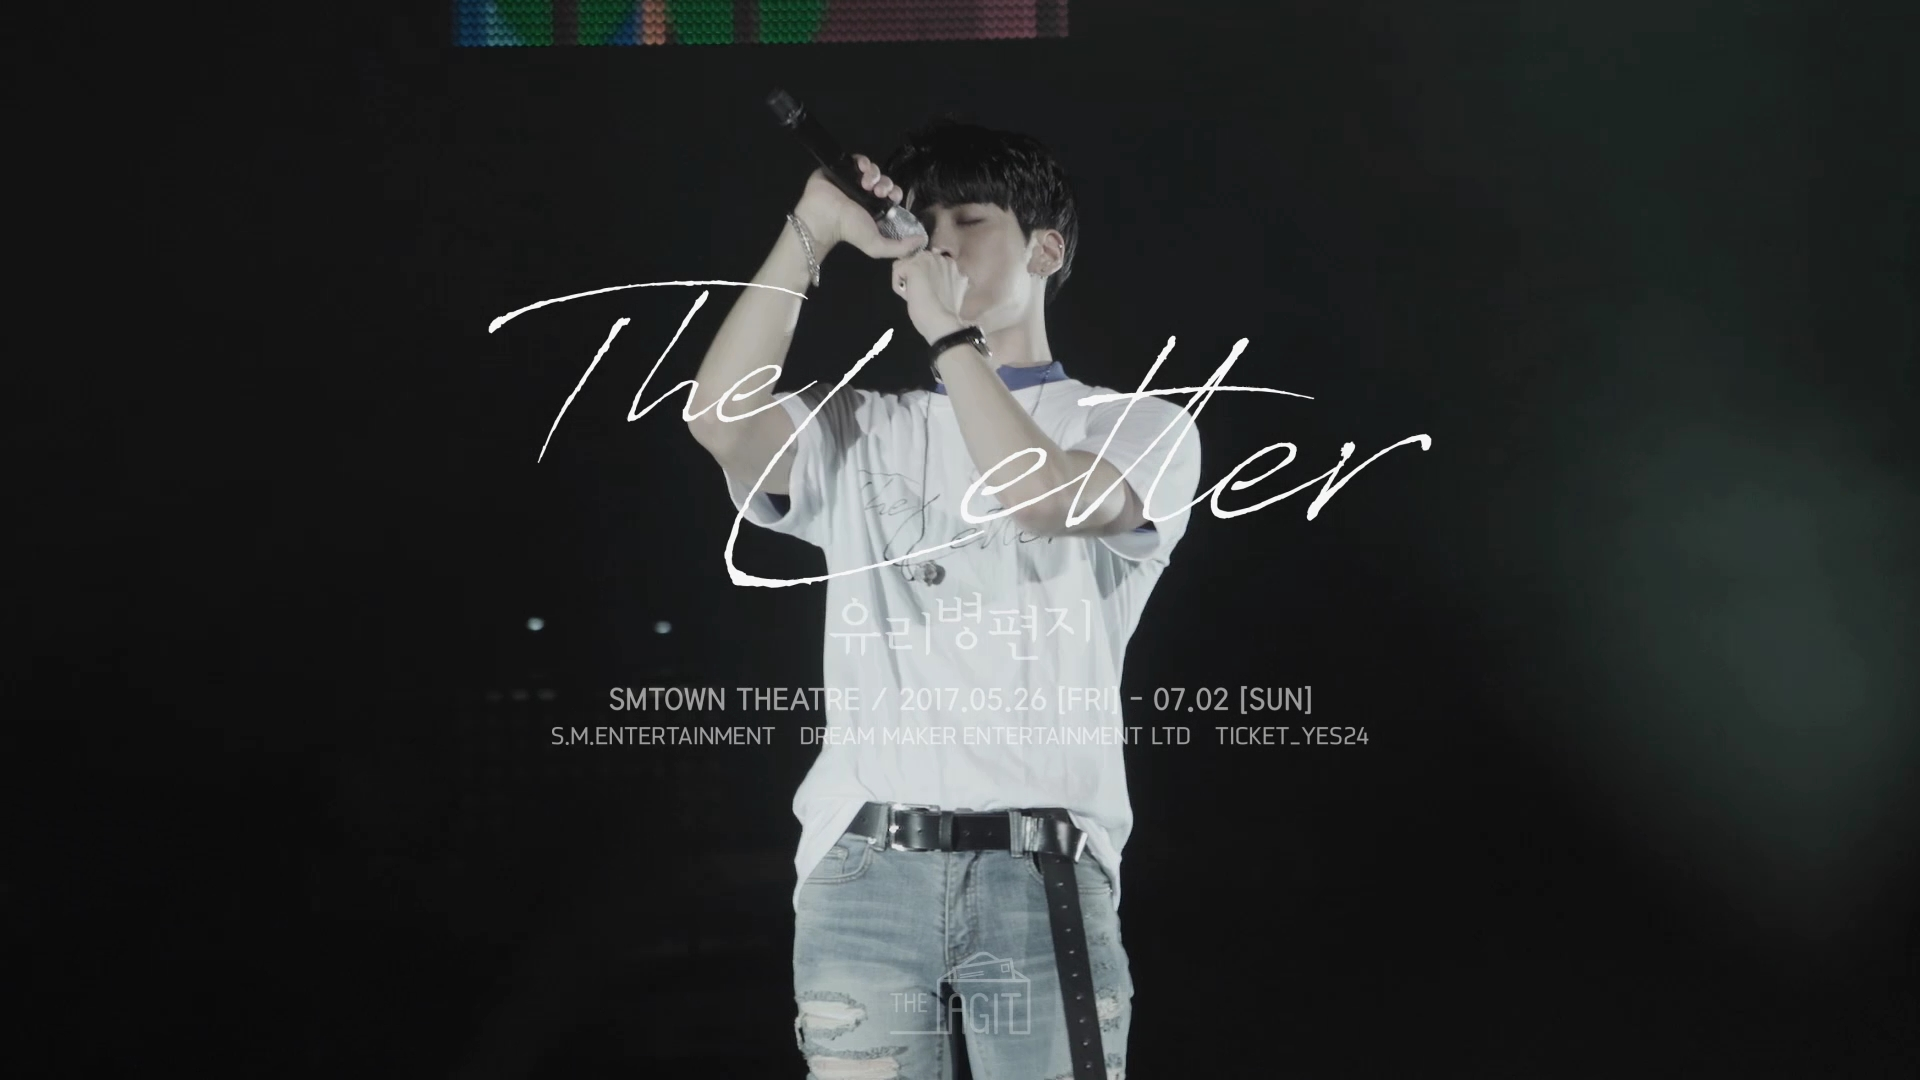 [THE AGIT] 유리병편지(The Letter) - JONGHYUN Highlight